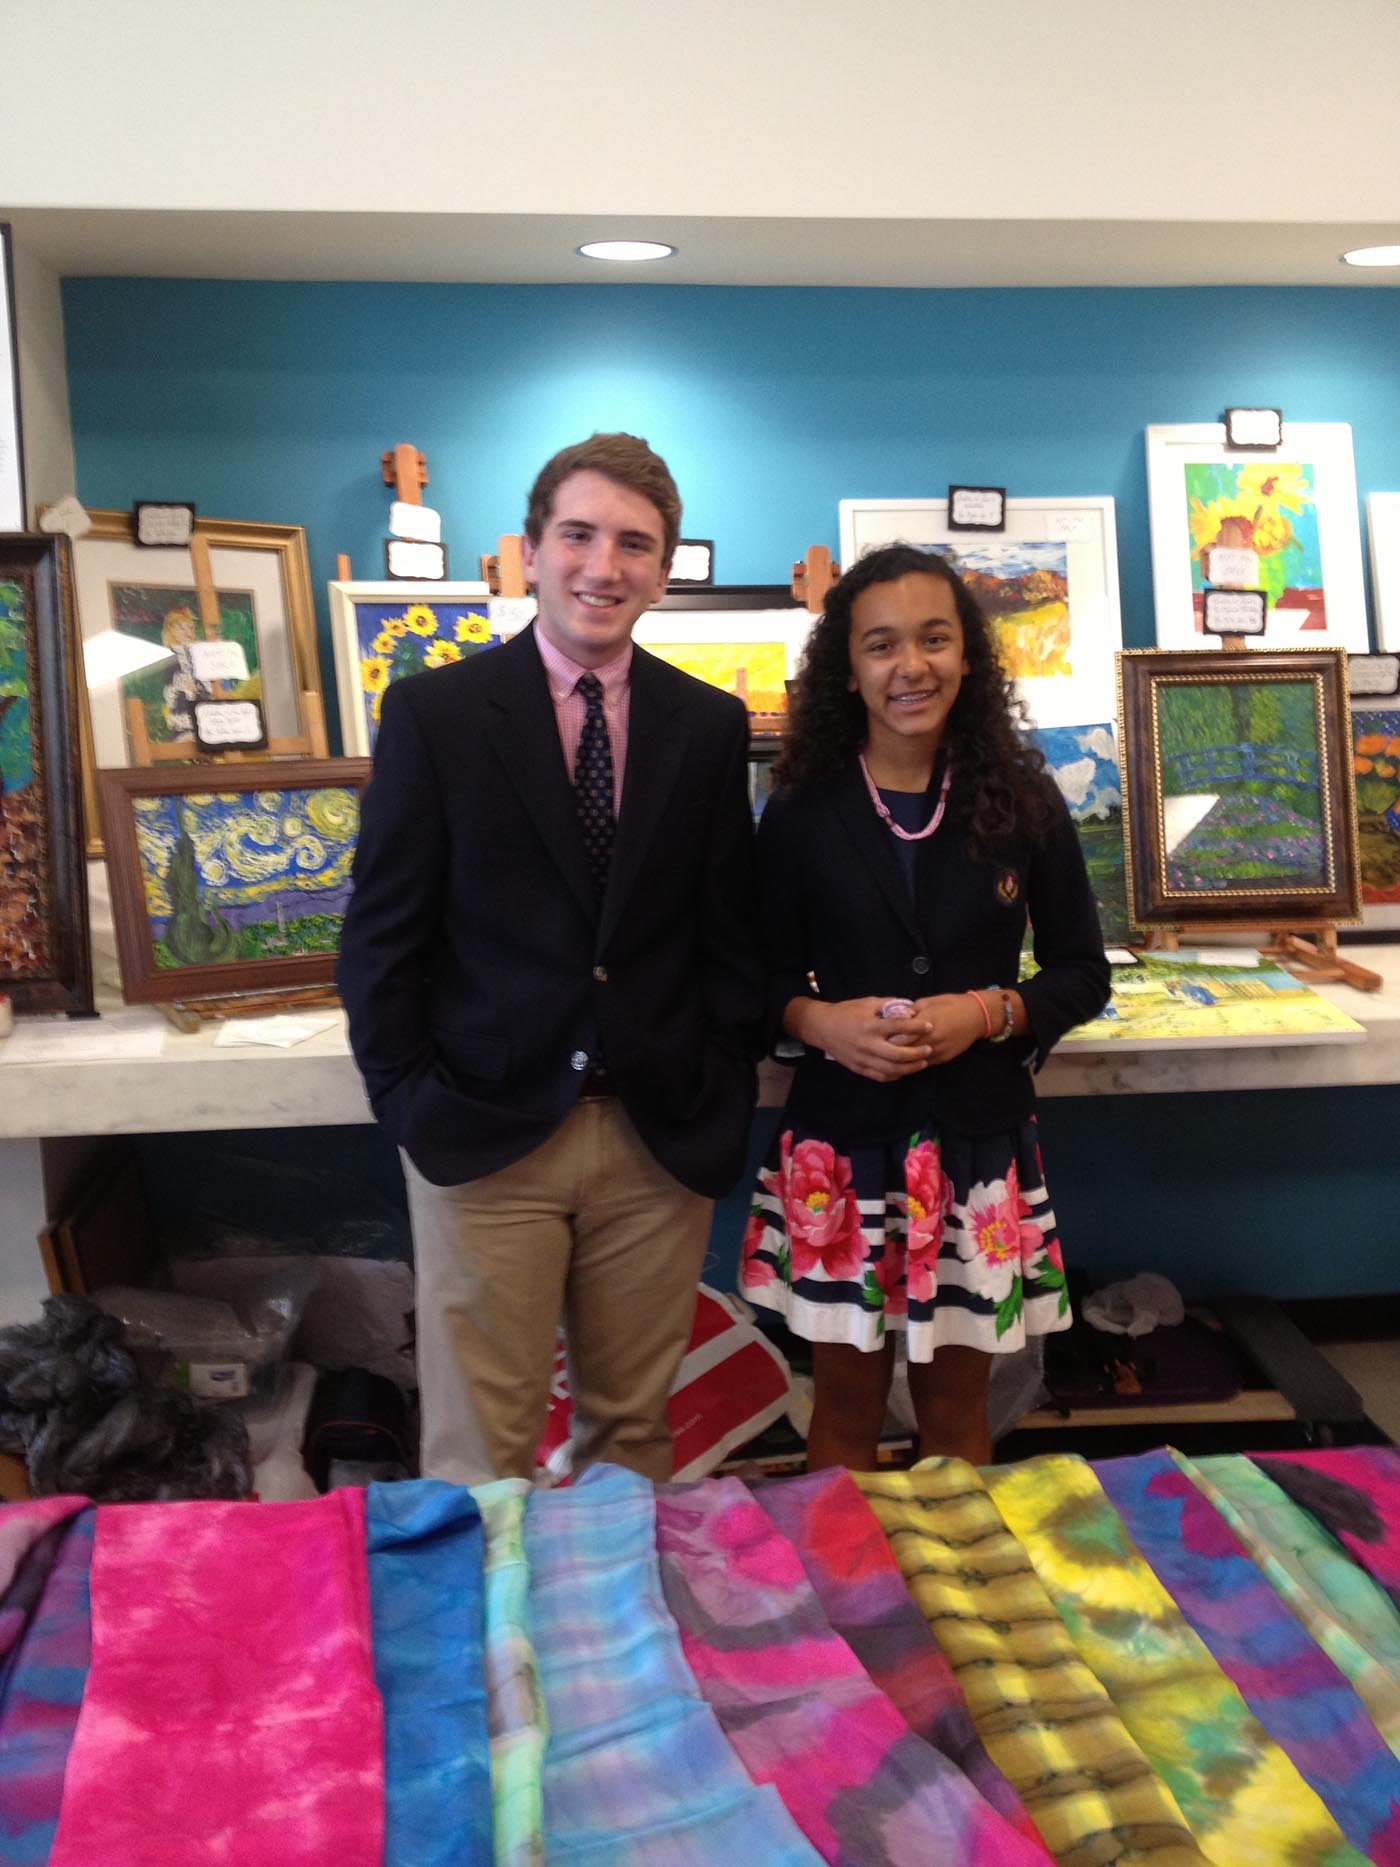 Tyler and Katie display their masterpieces at the United Nations Spouses Bazaar June 13, 2013